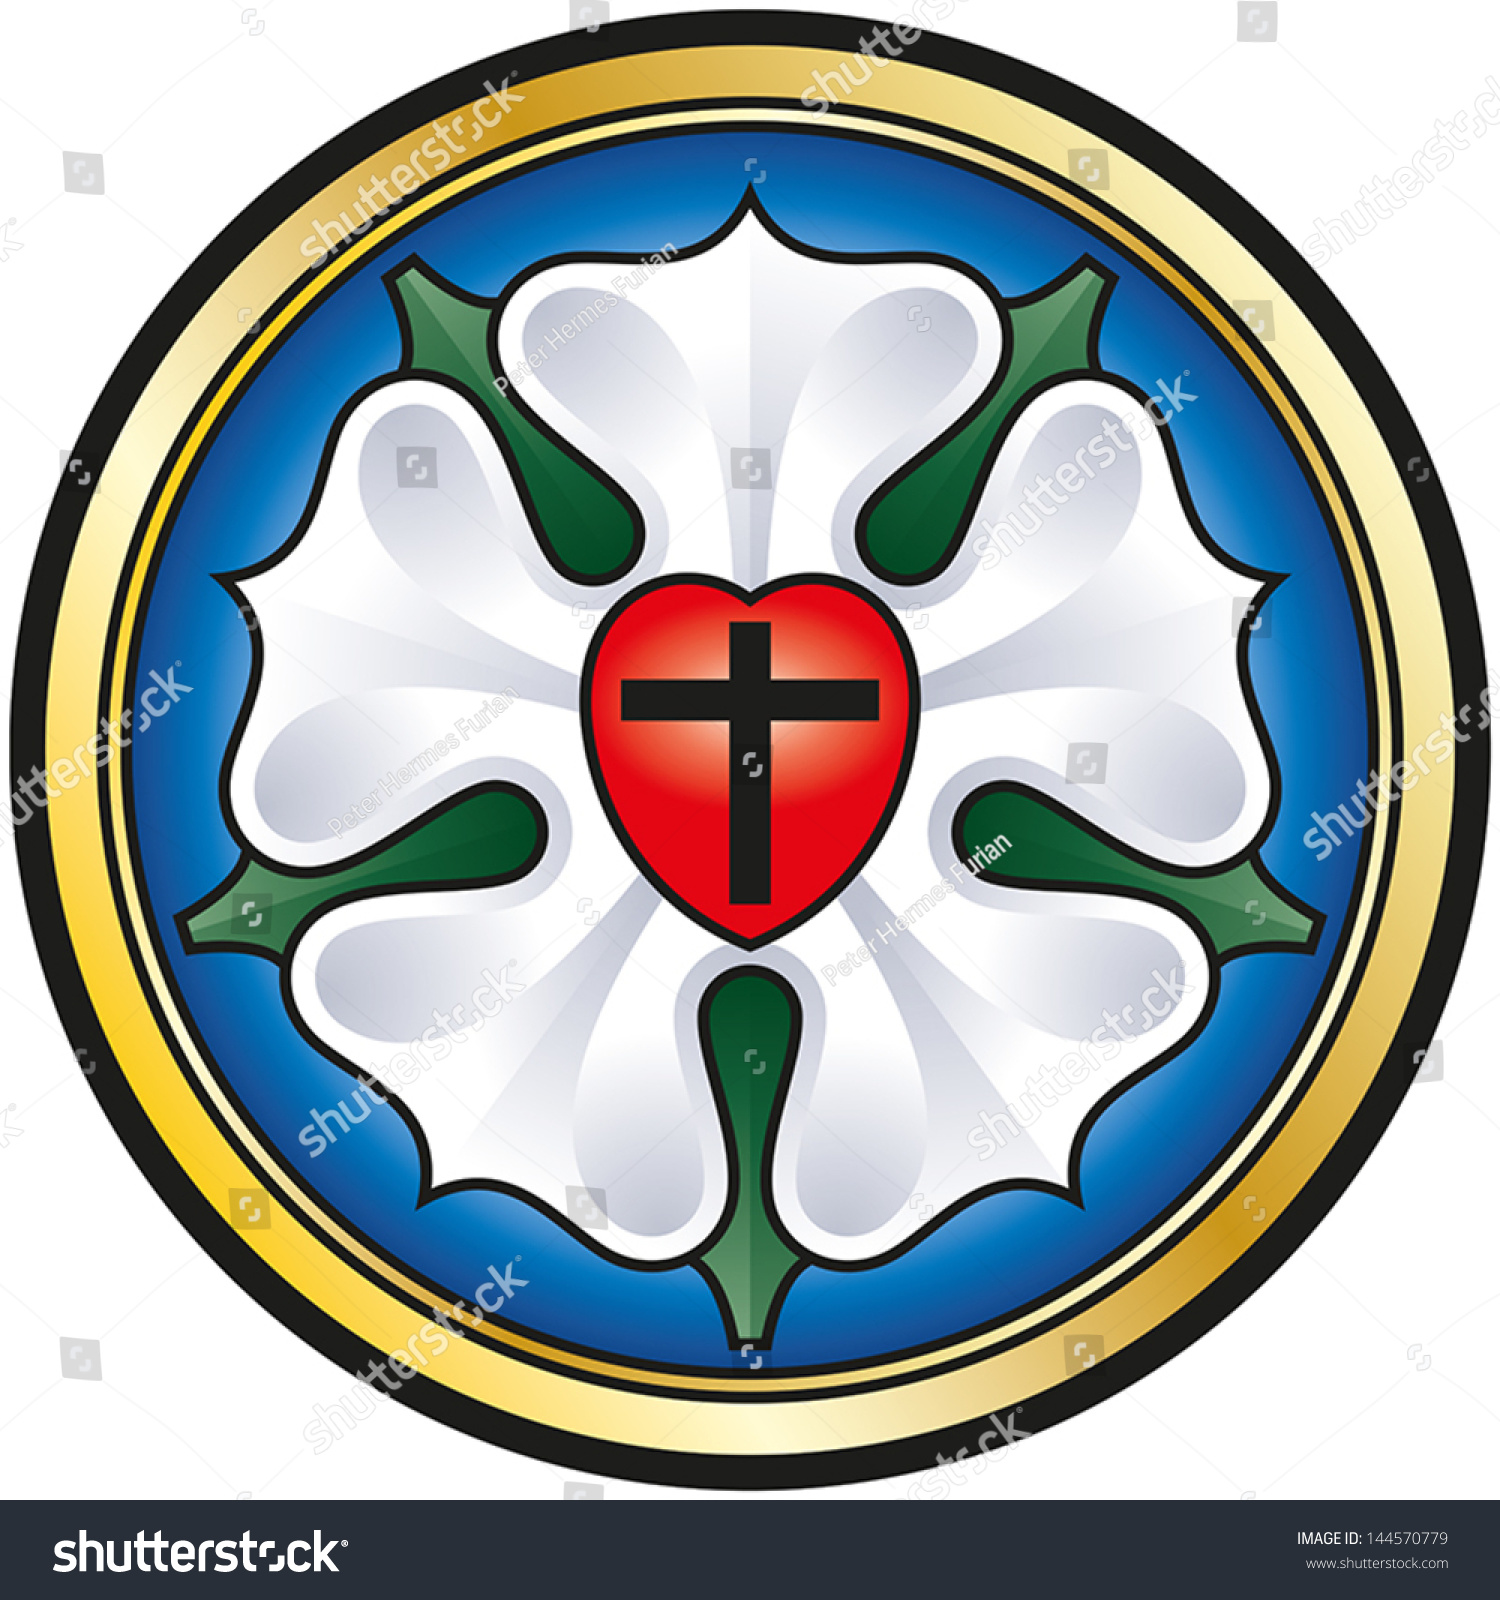 Luther rose colorized illustration luther seal stock vector luther rose colorized illustration of the luther seal a symbol for lutheranism a buycottarizona Choice Image